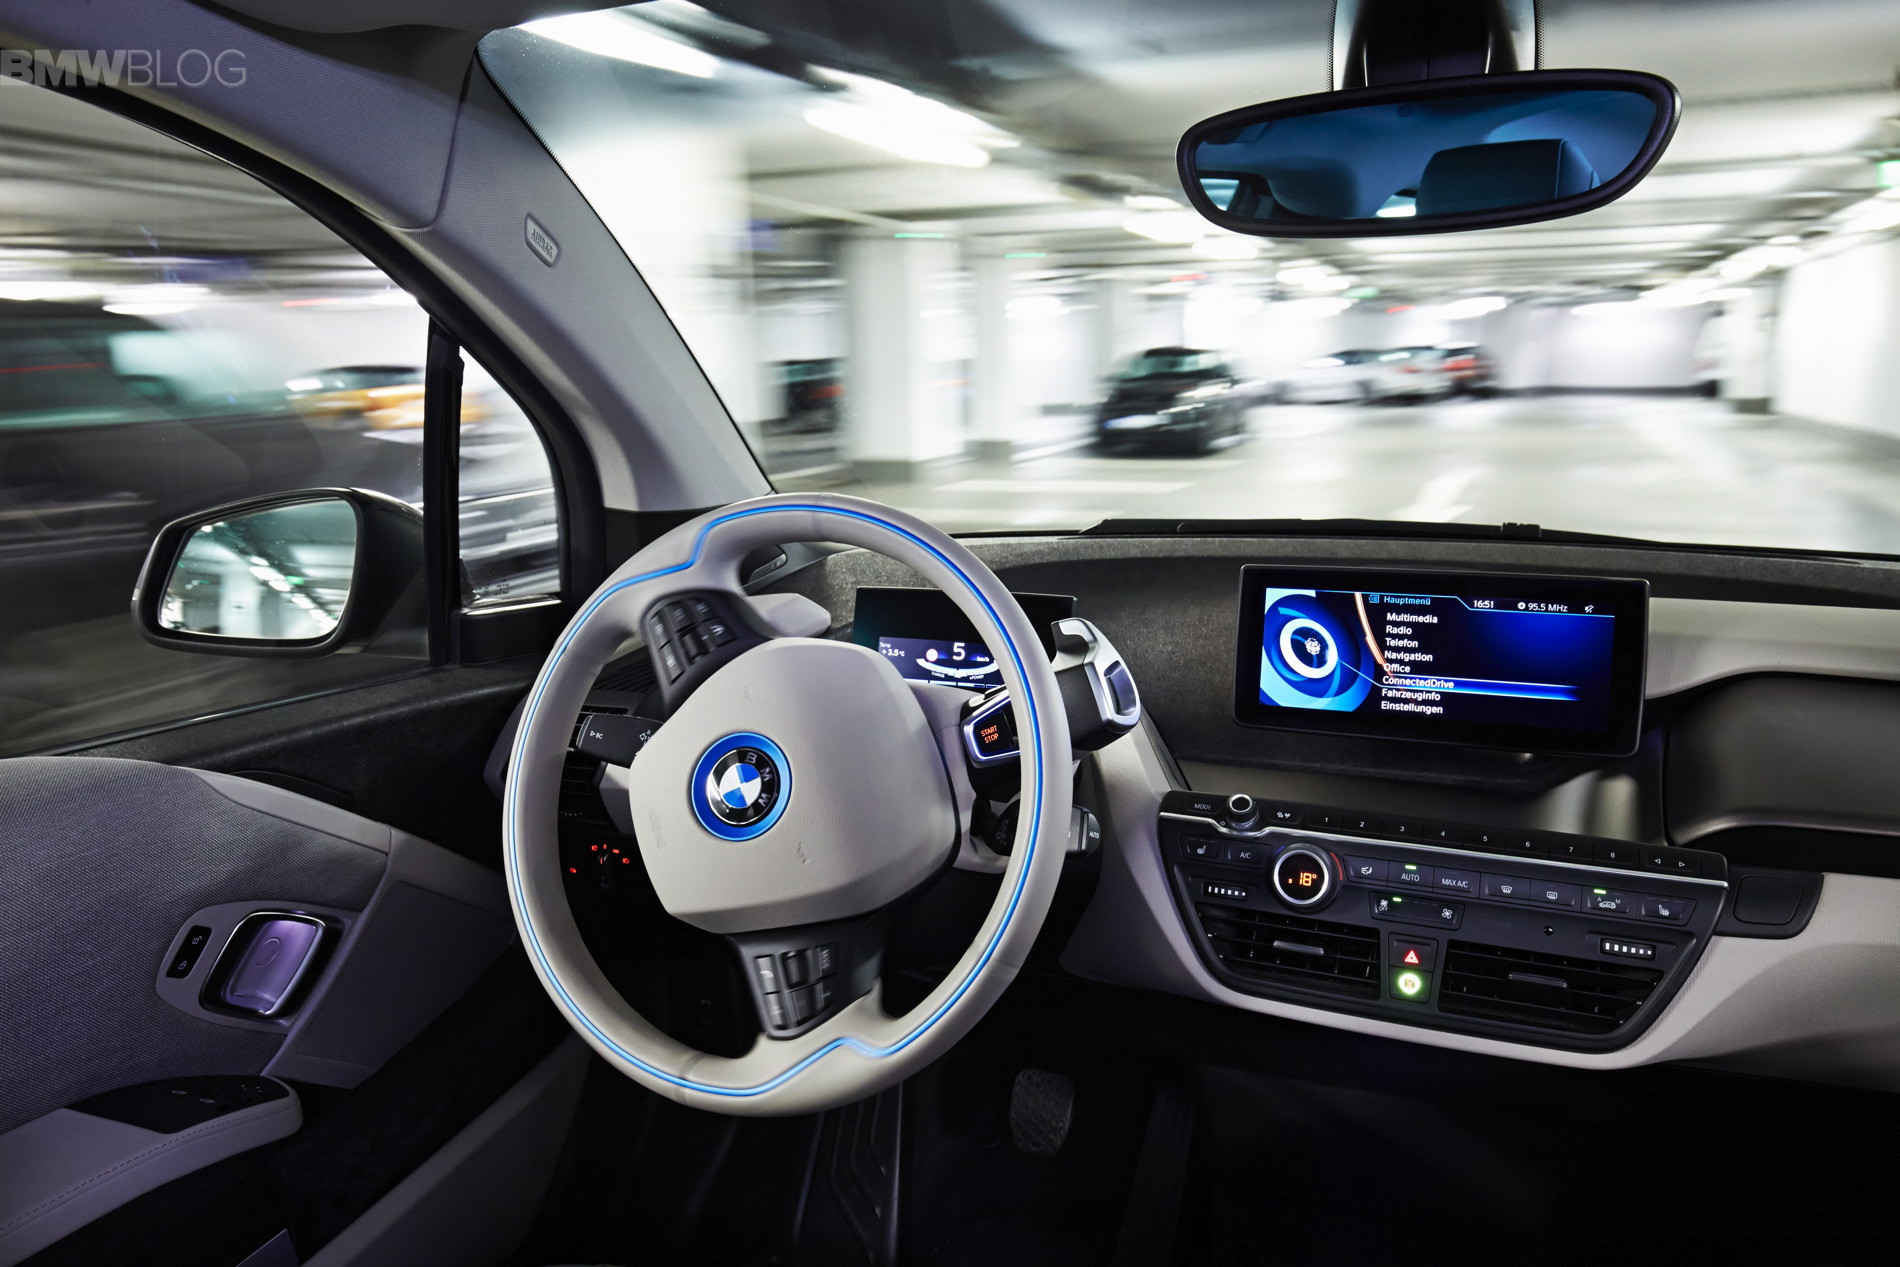 bmw-fully-automated-parking-07.jpg